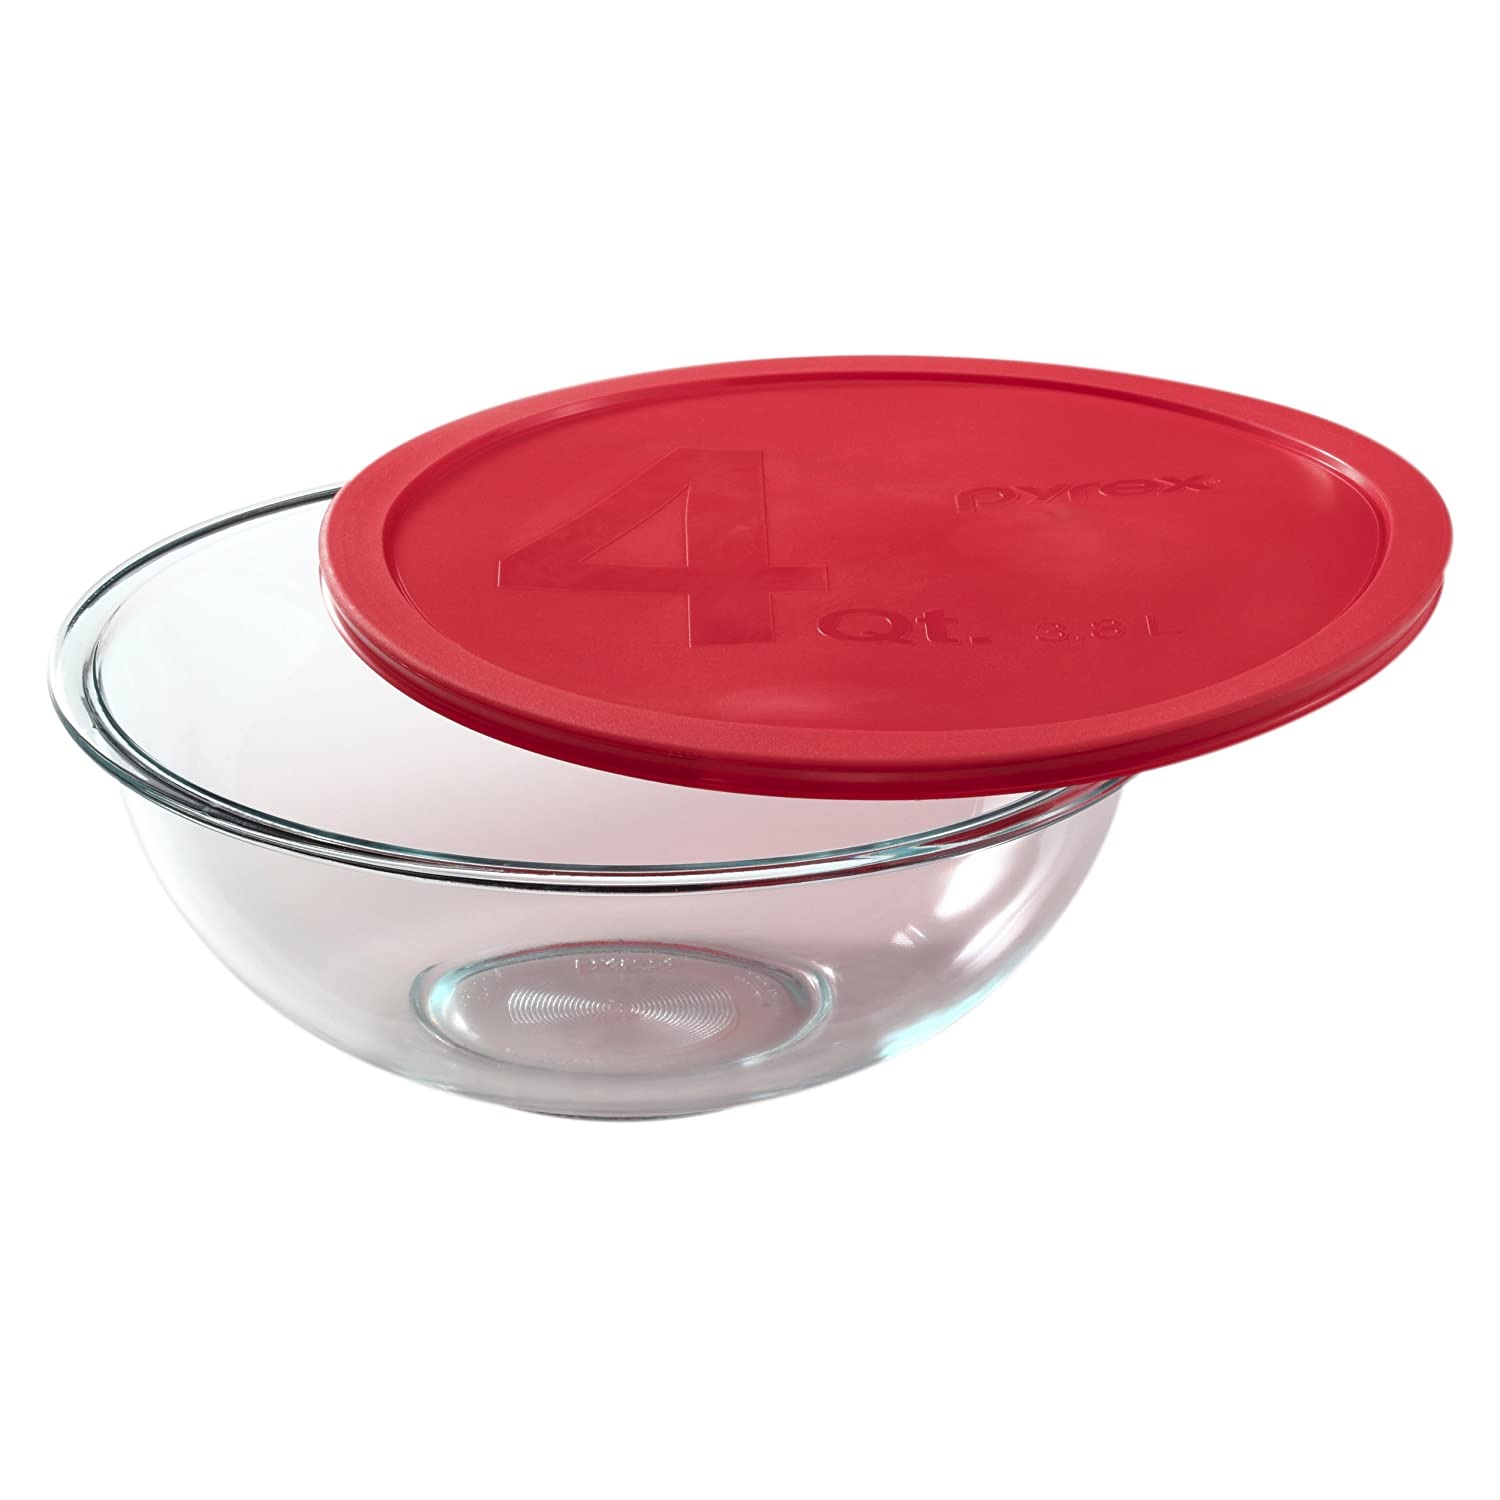 Pyrex Smart Essentials 4-Quart Glass Mixing Bowl World Kitchen (PA) 1069533